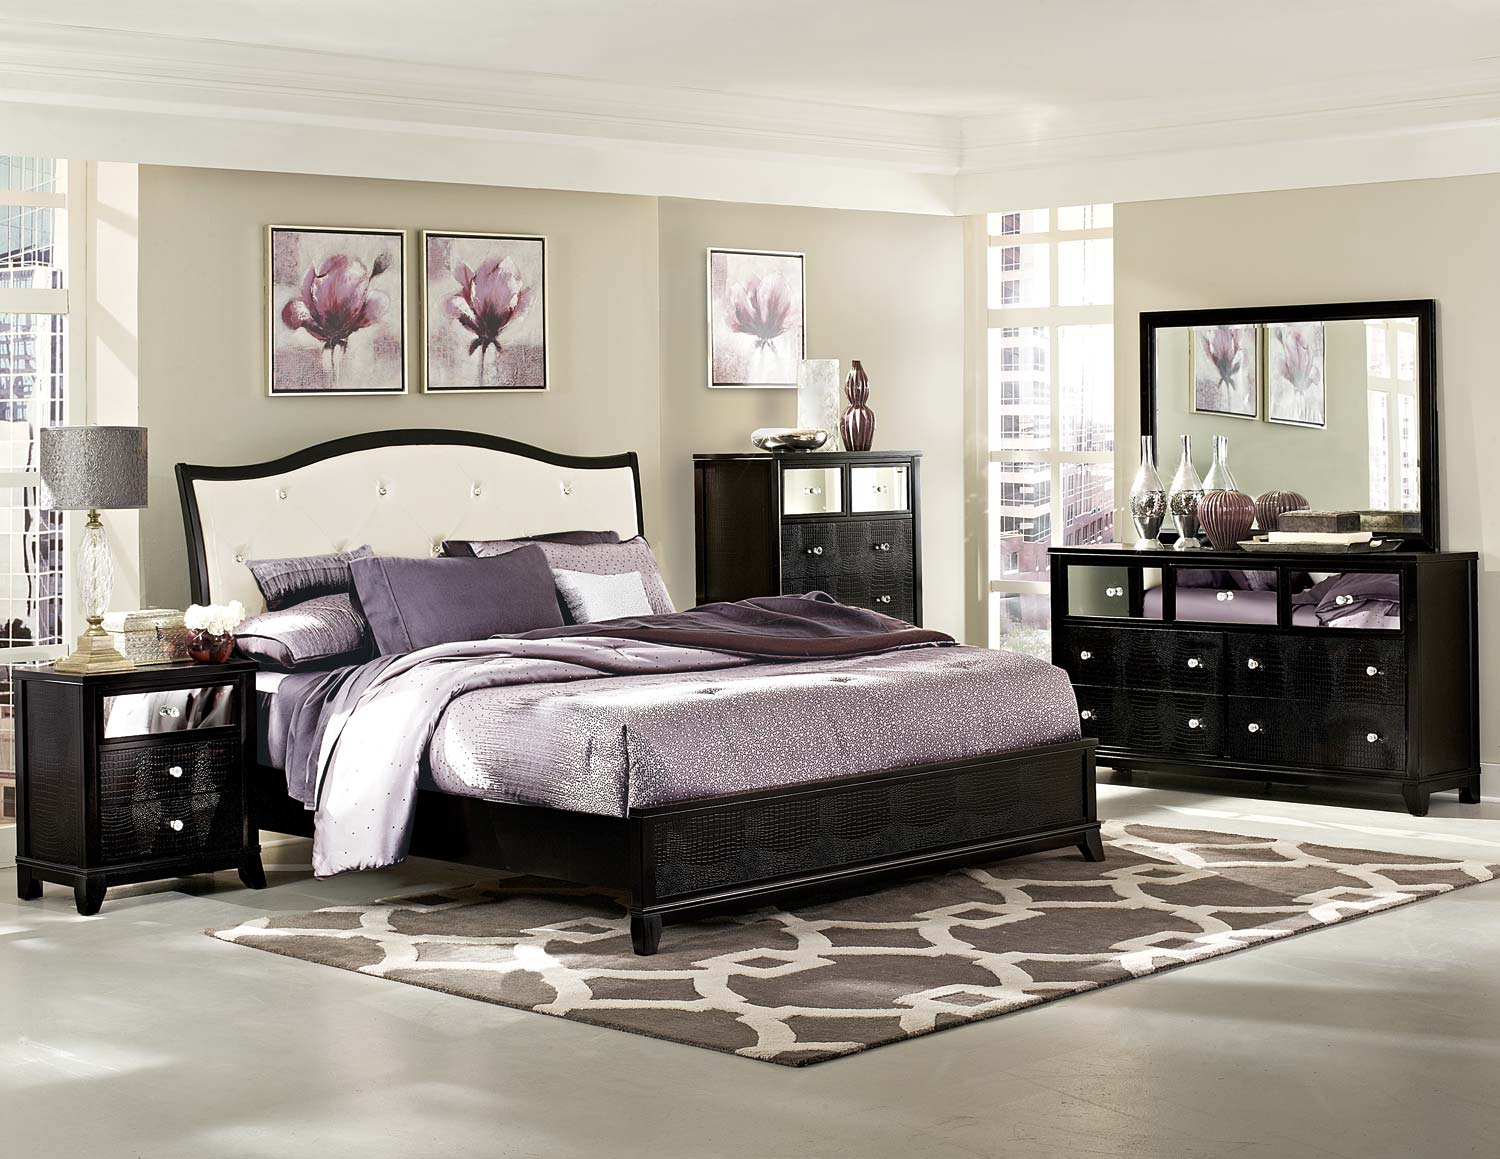 Bedroom Furniture Sets Dallas Pictures Awesome Ddnspexcelinfo